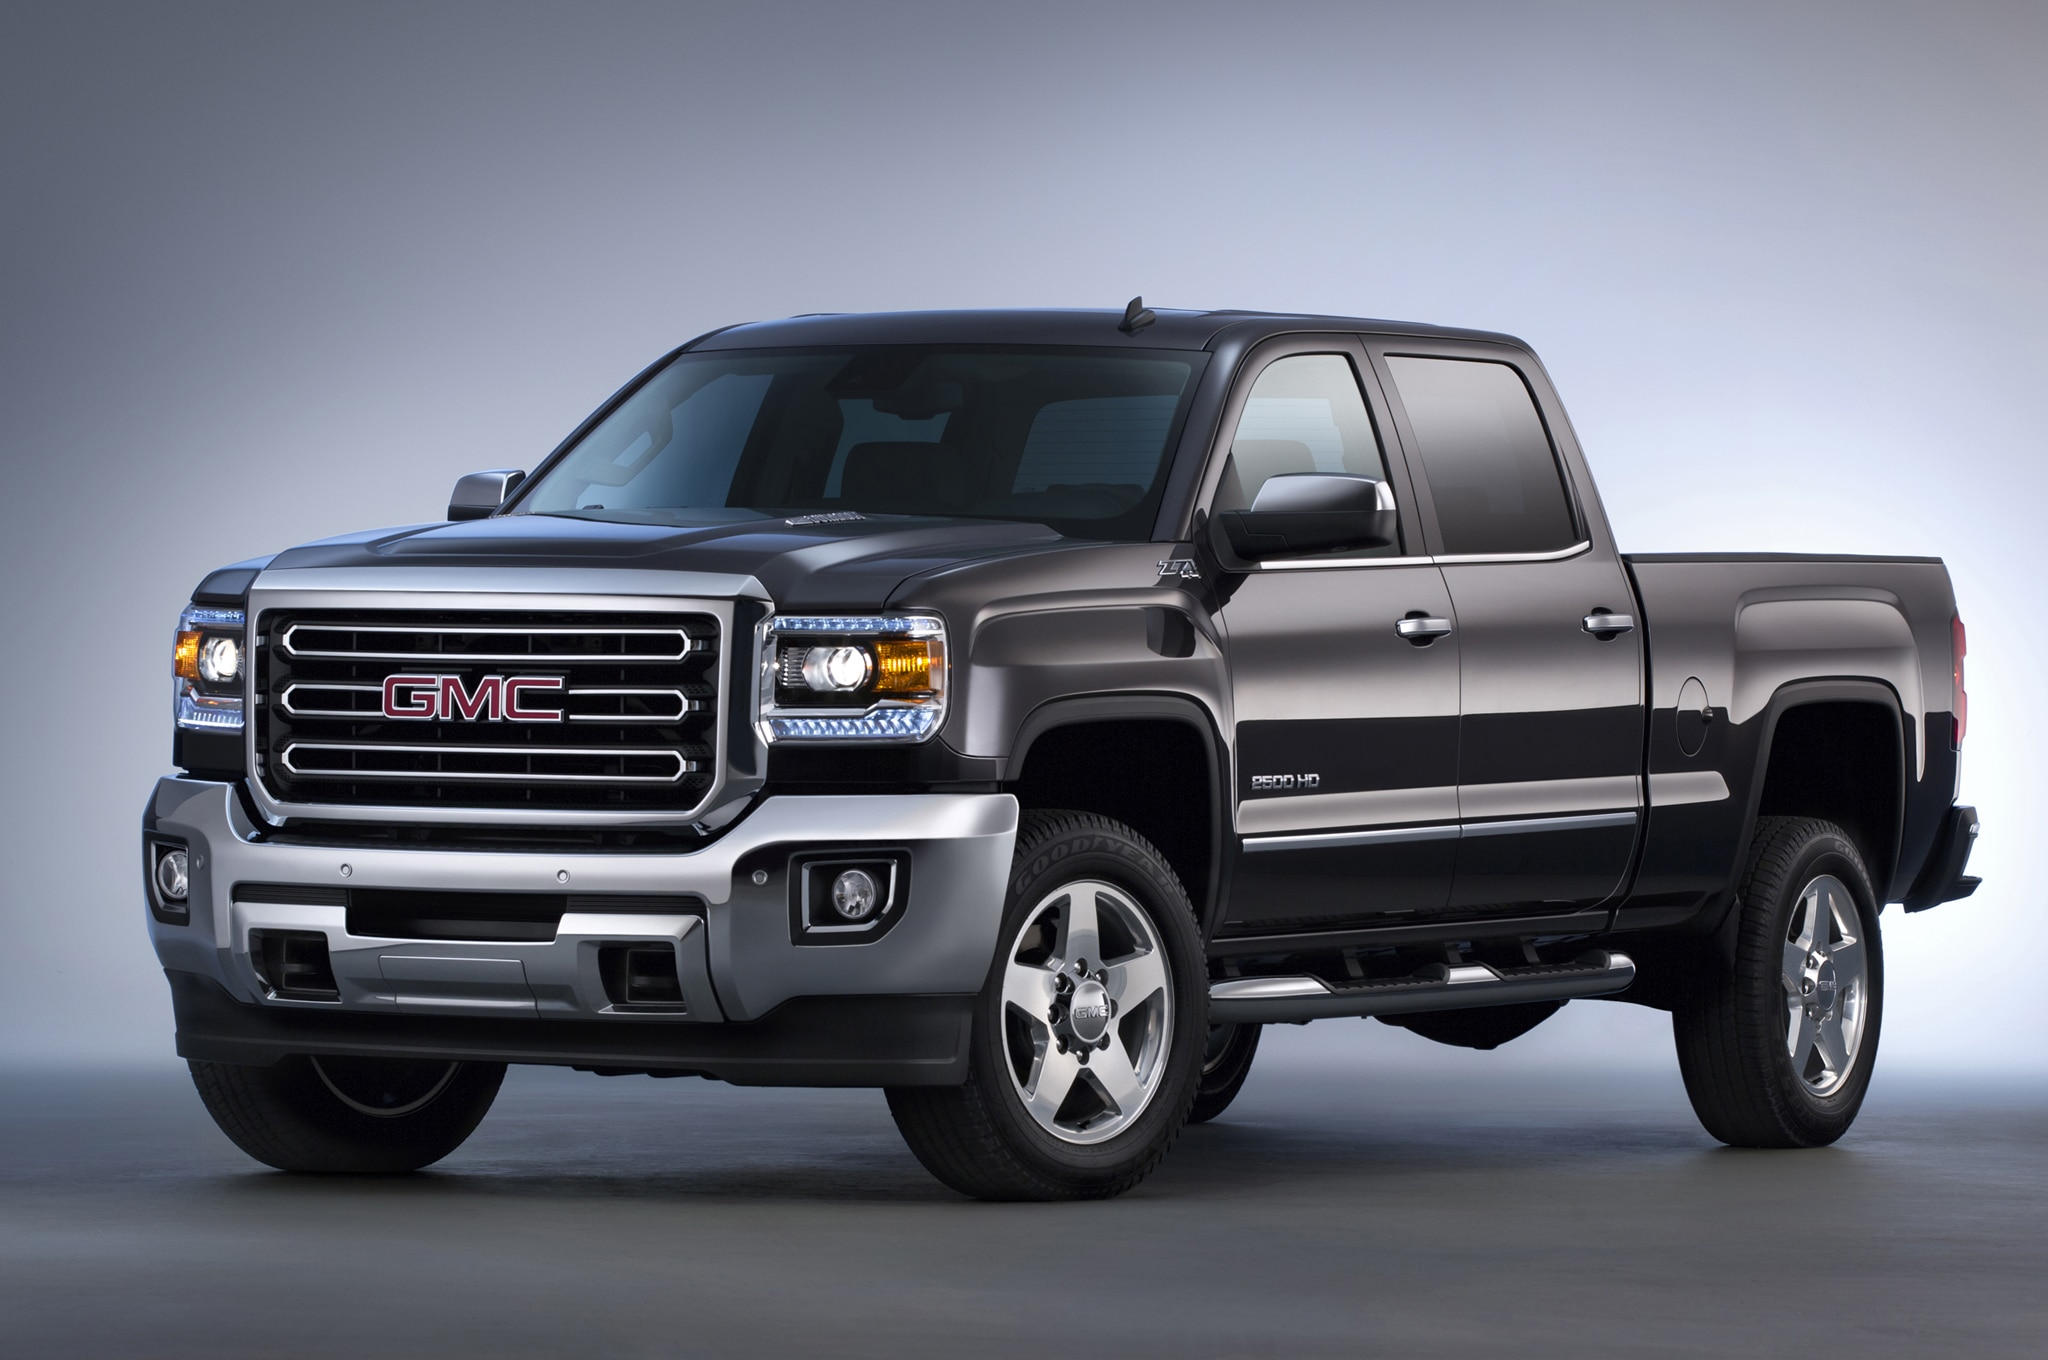 2015 Gmc Sierra Hd Front Three Quarters1